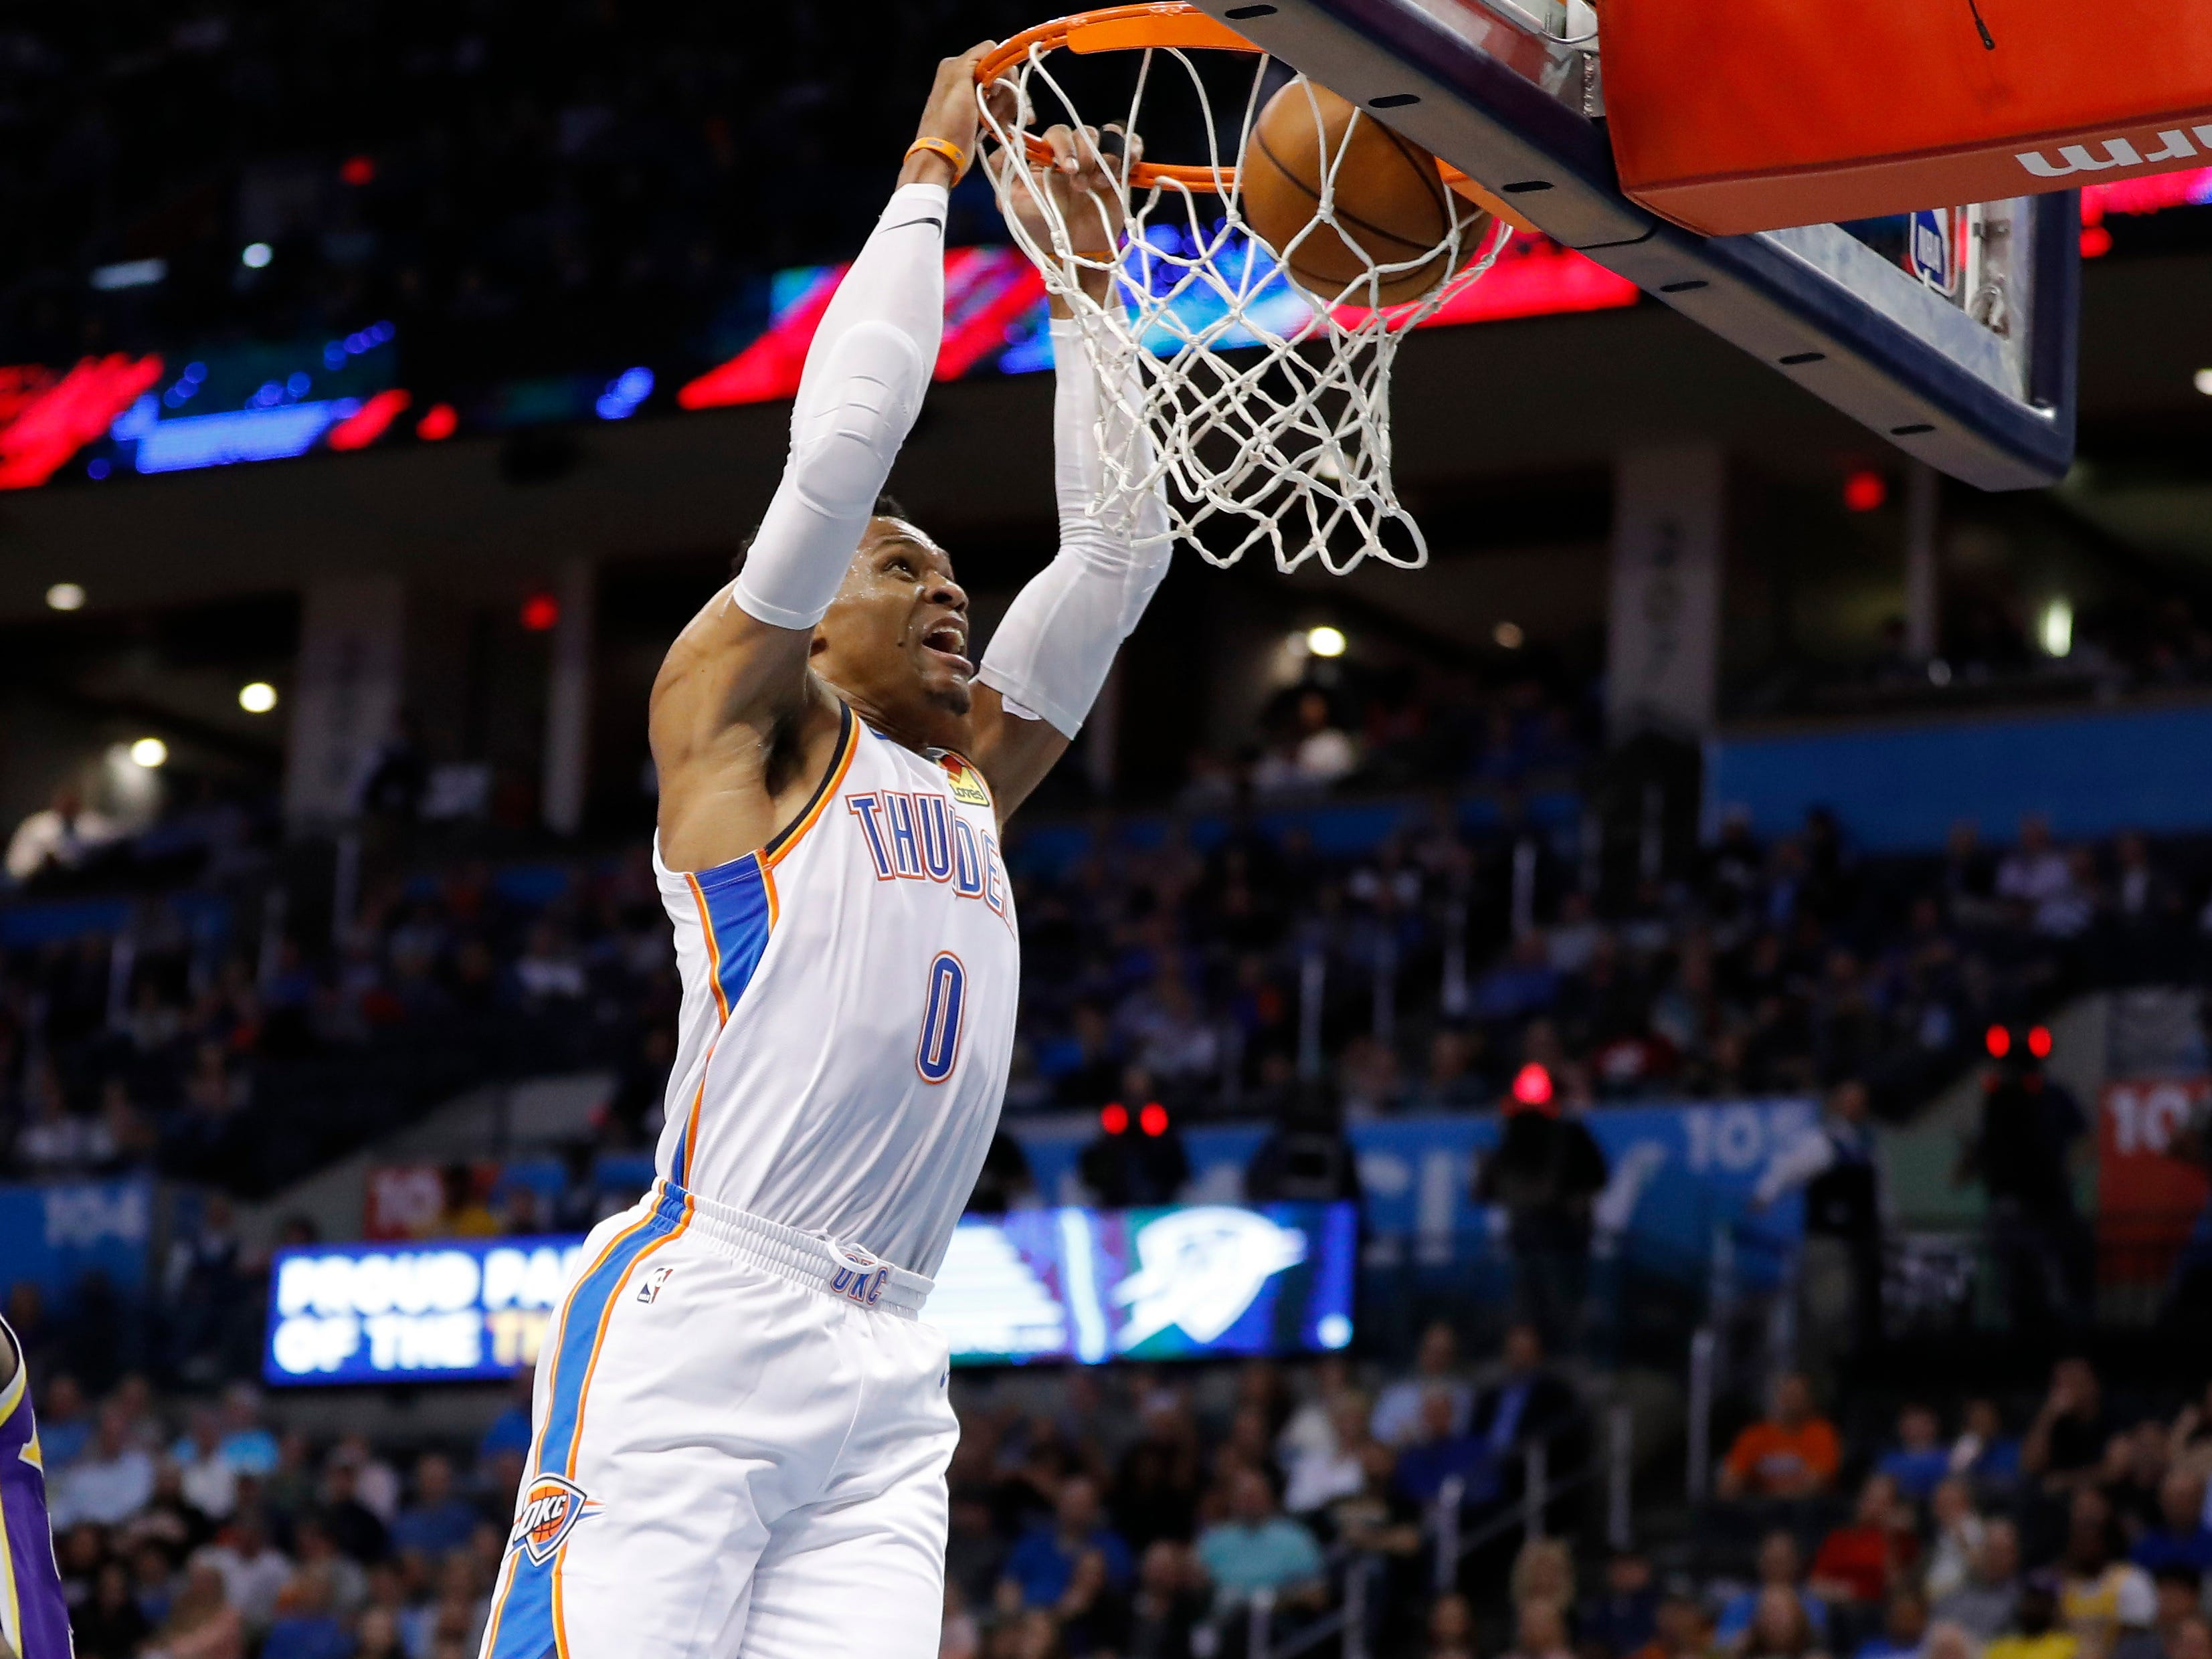 116. Russell Westbrook, Thunder (April 2): 20 points, 20 rebounds, 21 assists in 119-103 win over Lakers (31st of season).